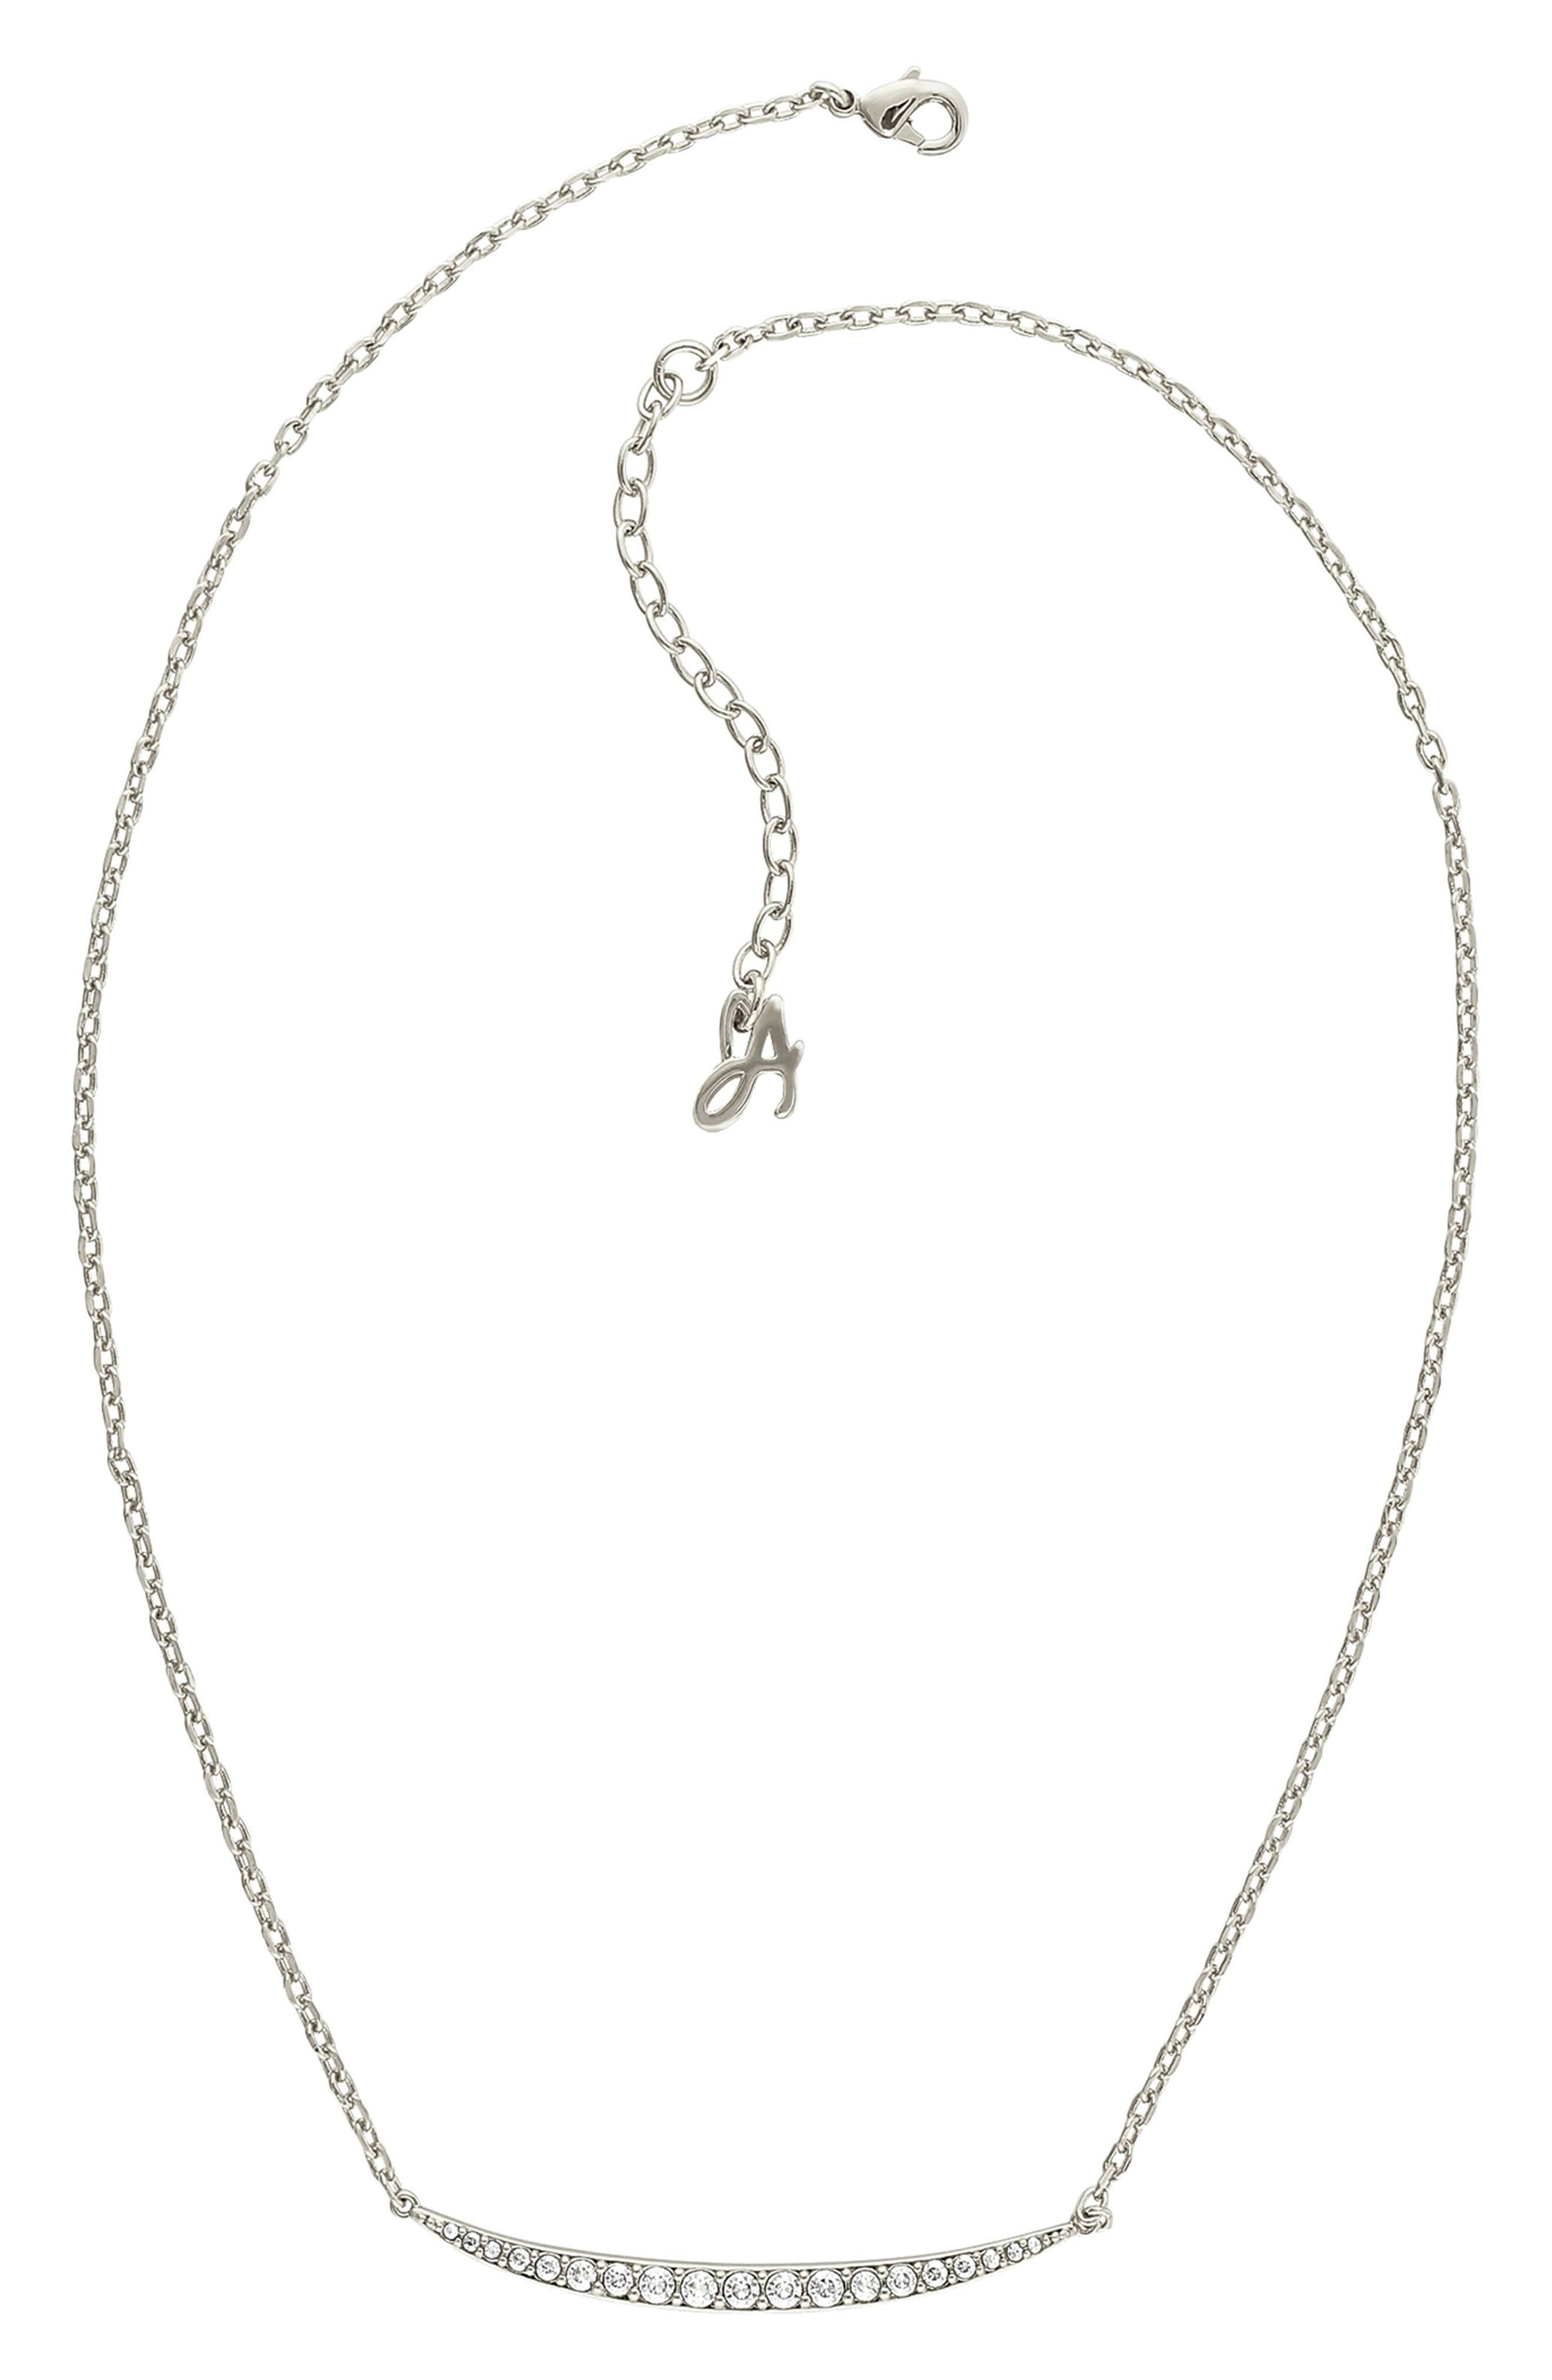 ADORÉE Curved Crystal Bar Necklace in Silver